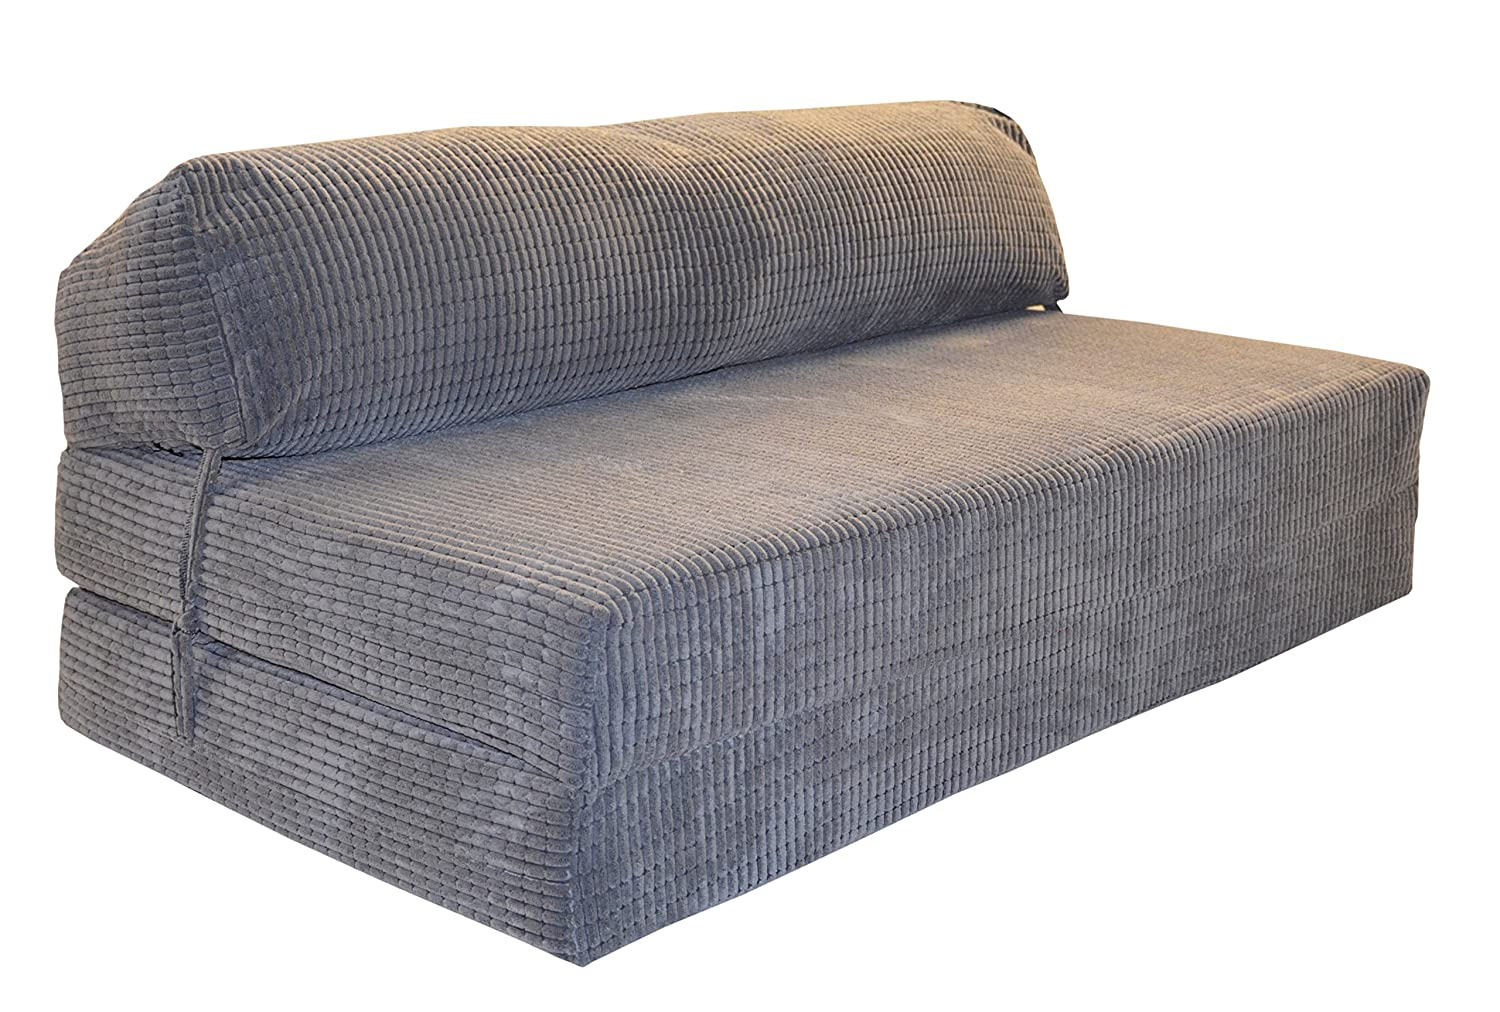 Double Sofa Bed Jazz Sofabed Charcoal Da Vinci Deluxe Double Sofa Bed Amazonco